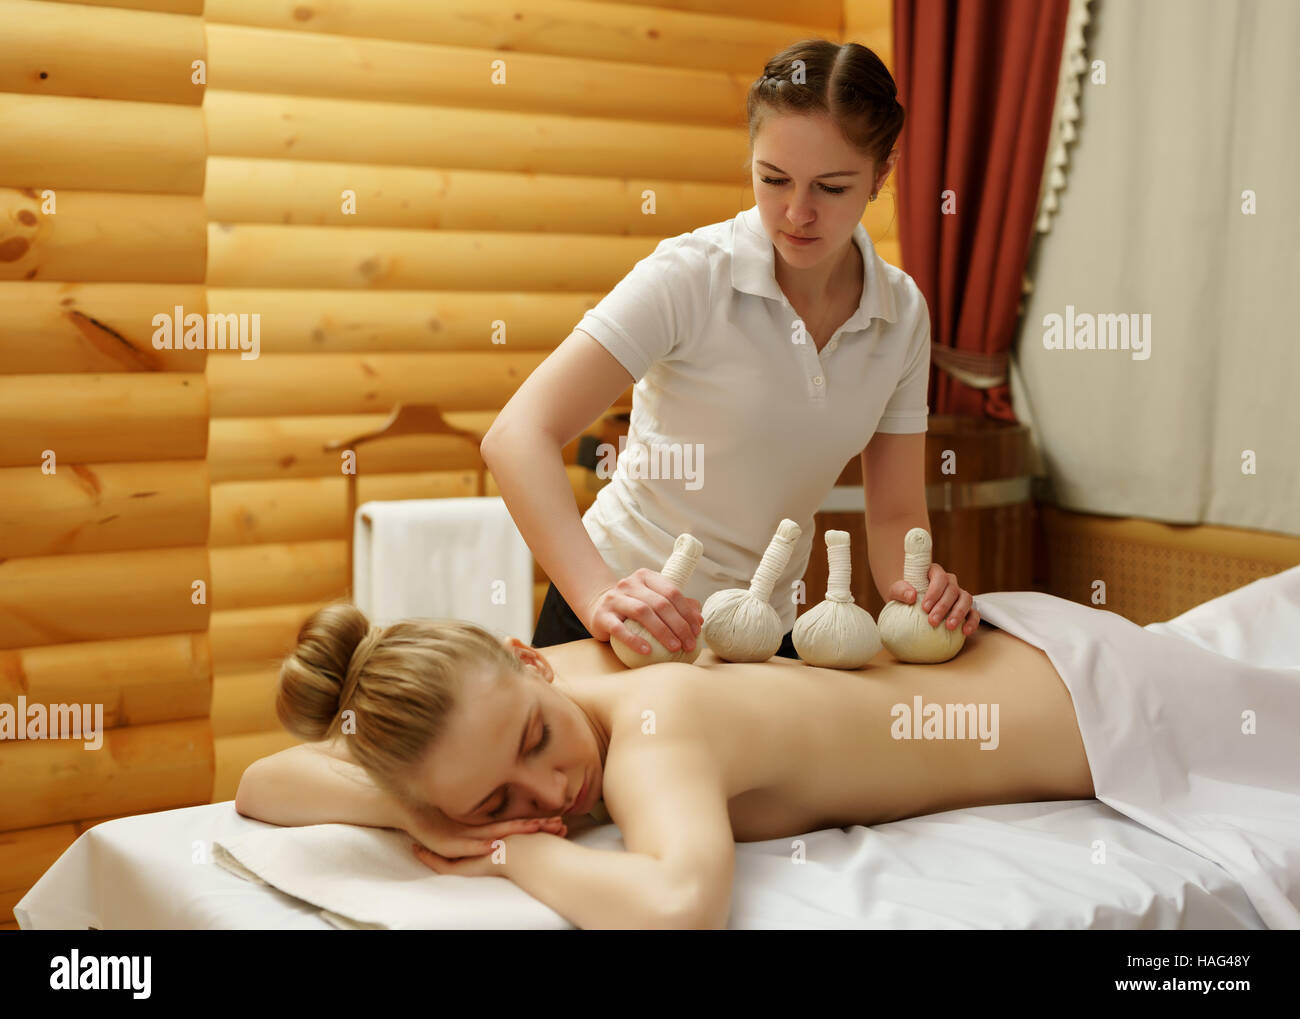 In spa. Masseuse puts salt bags on girl's back Stock Photo